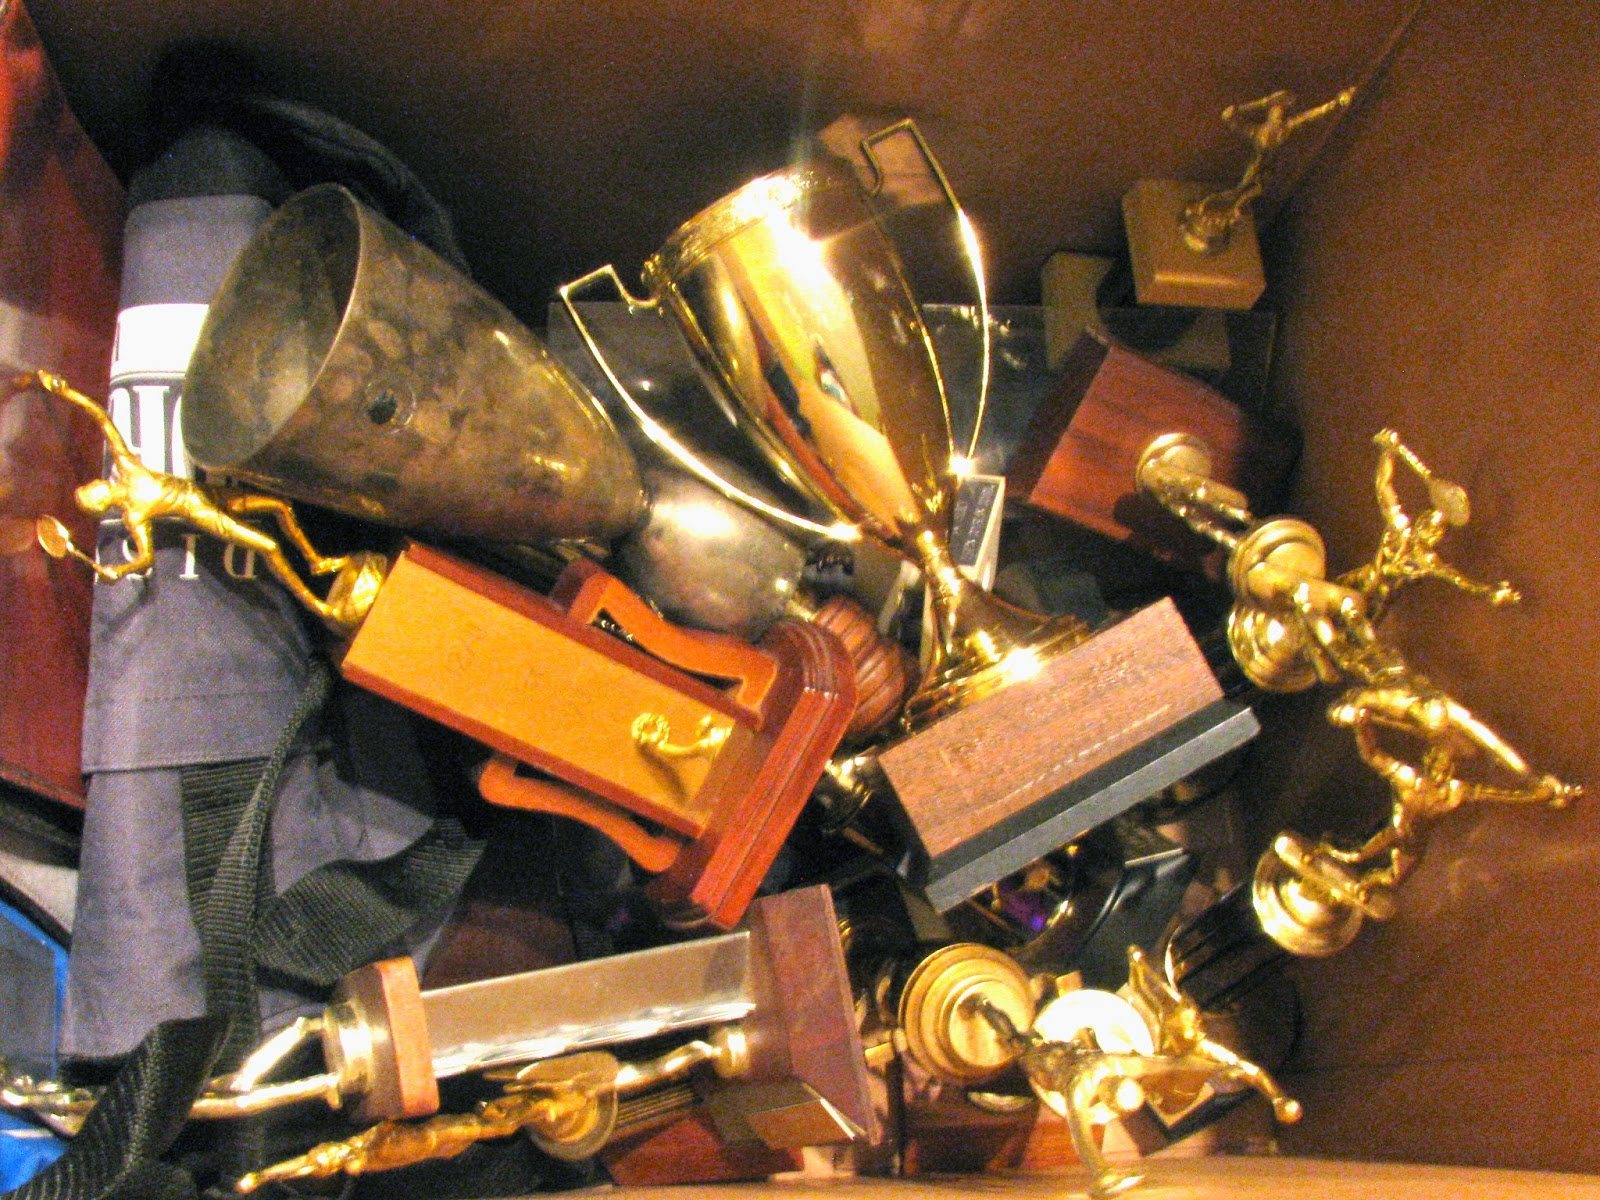 What are some ways to donate used trophies?